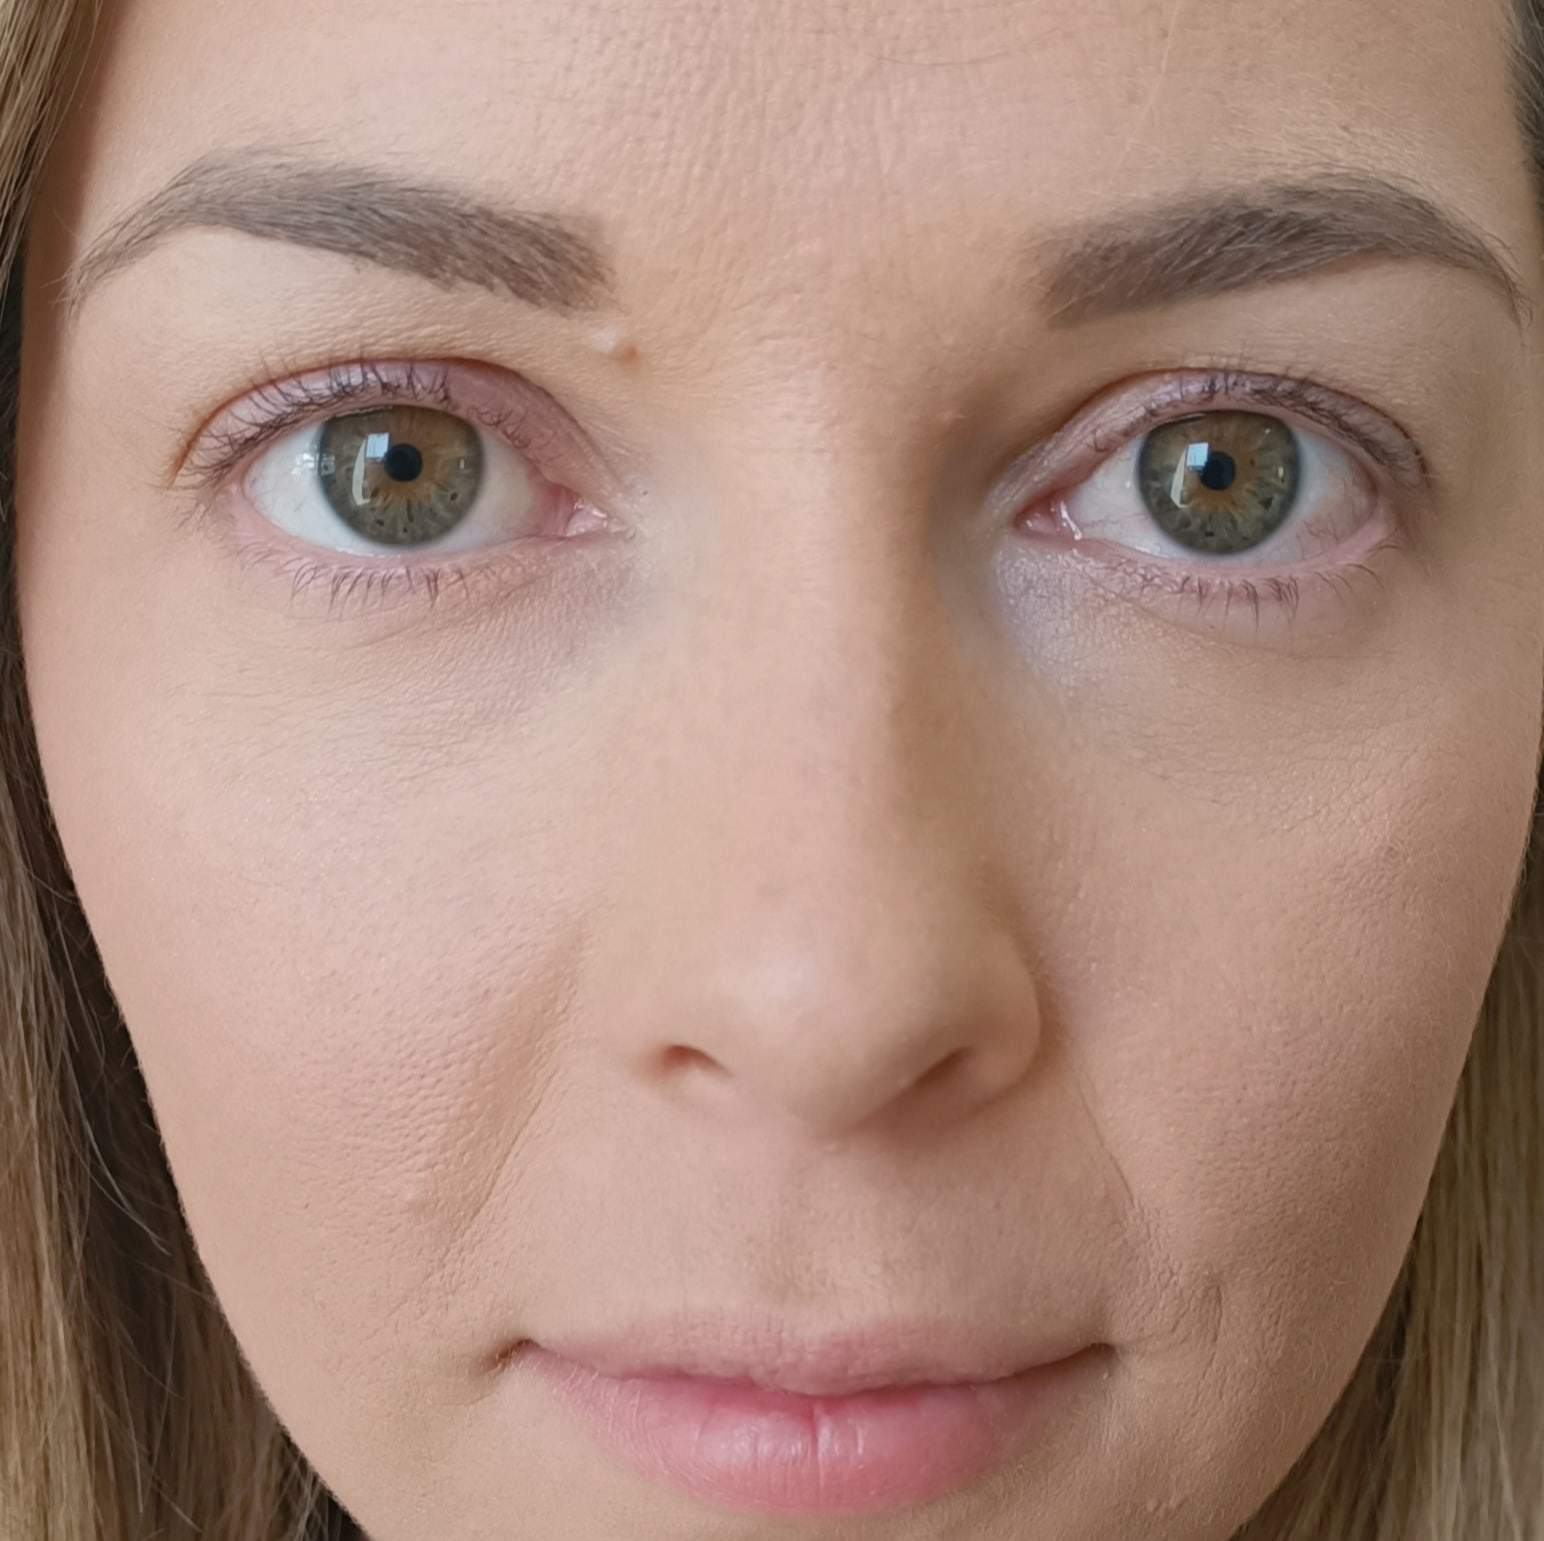 glam lashes after pic